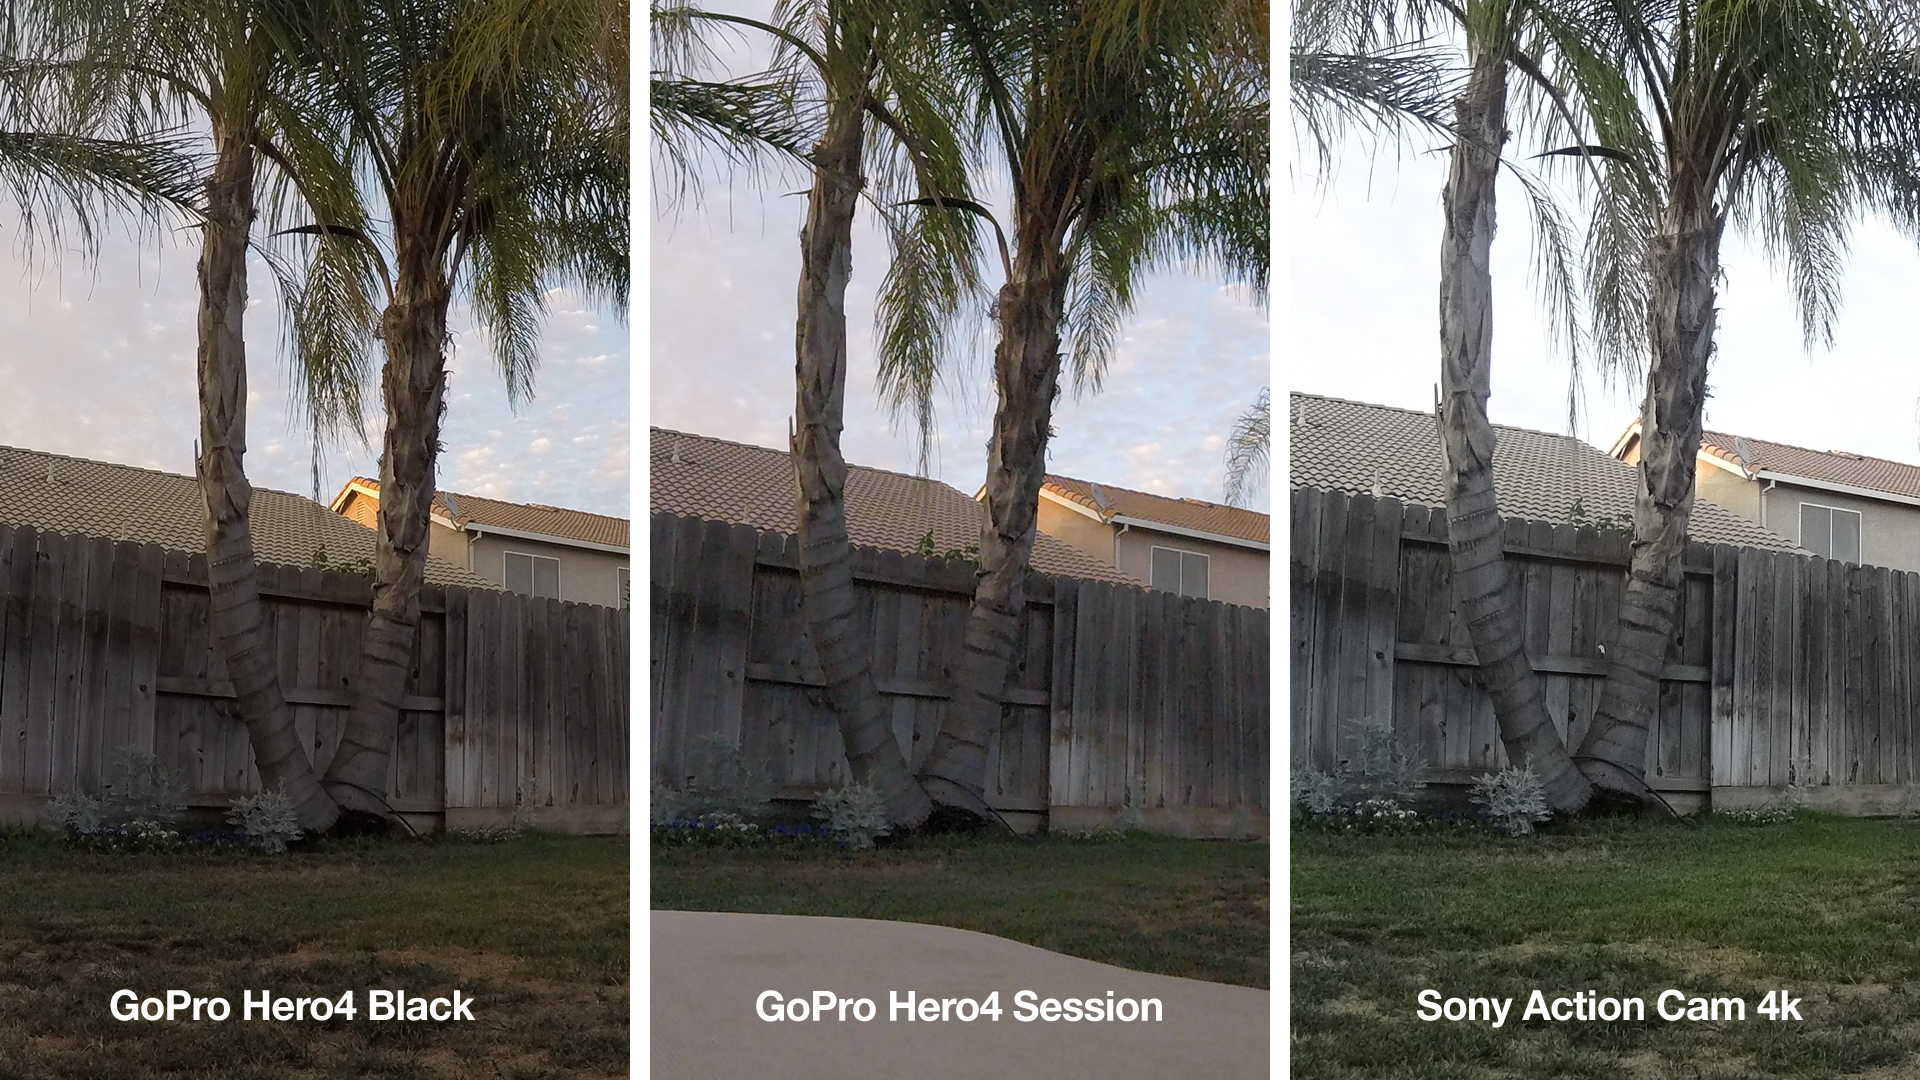 GoPro Hero4 Session vs GoPro Hero4 Black vs Sony 4K Action Cam